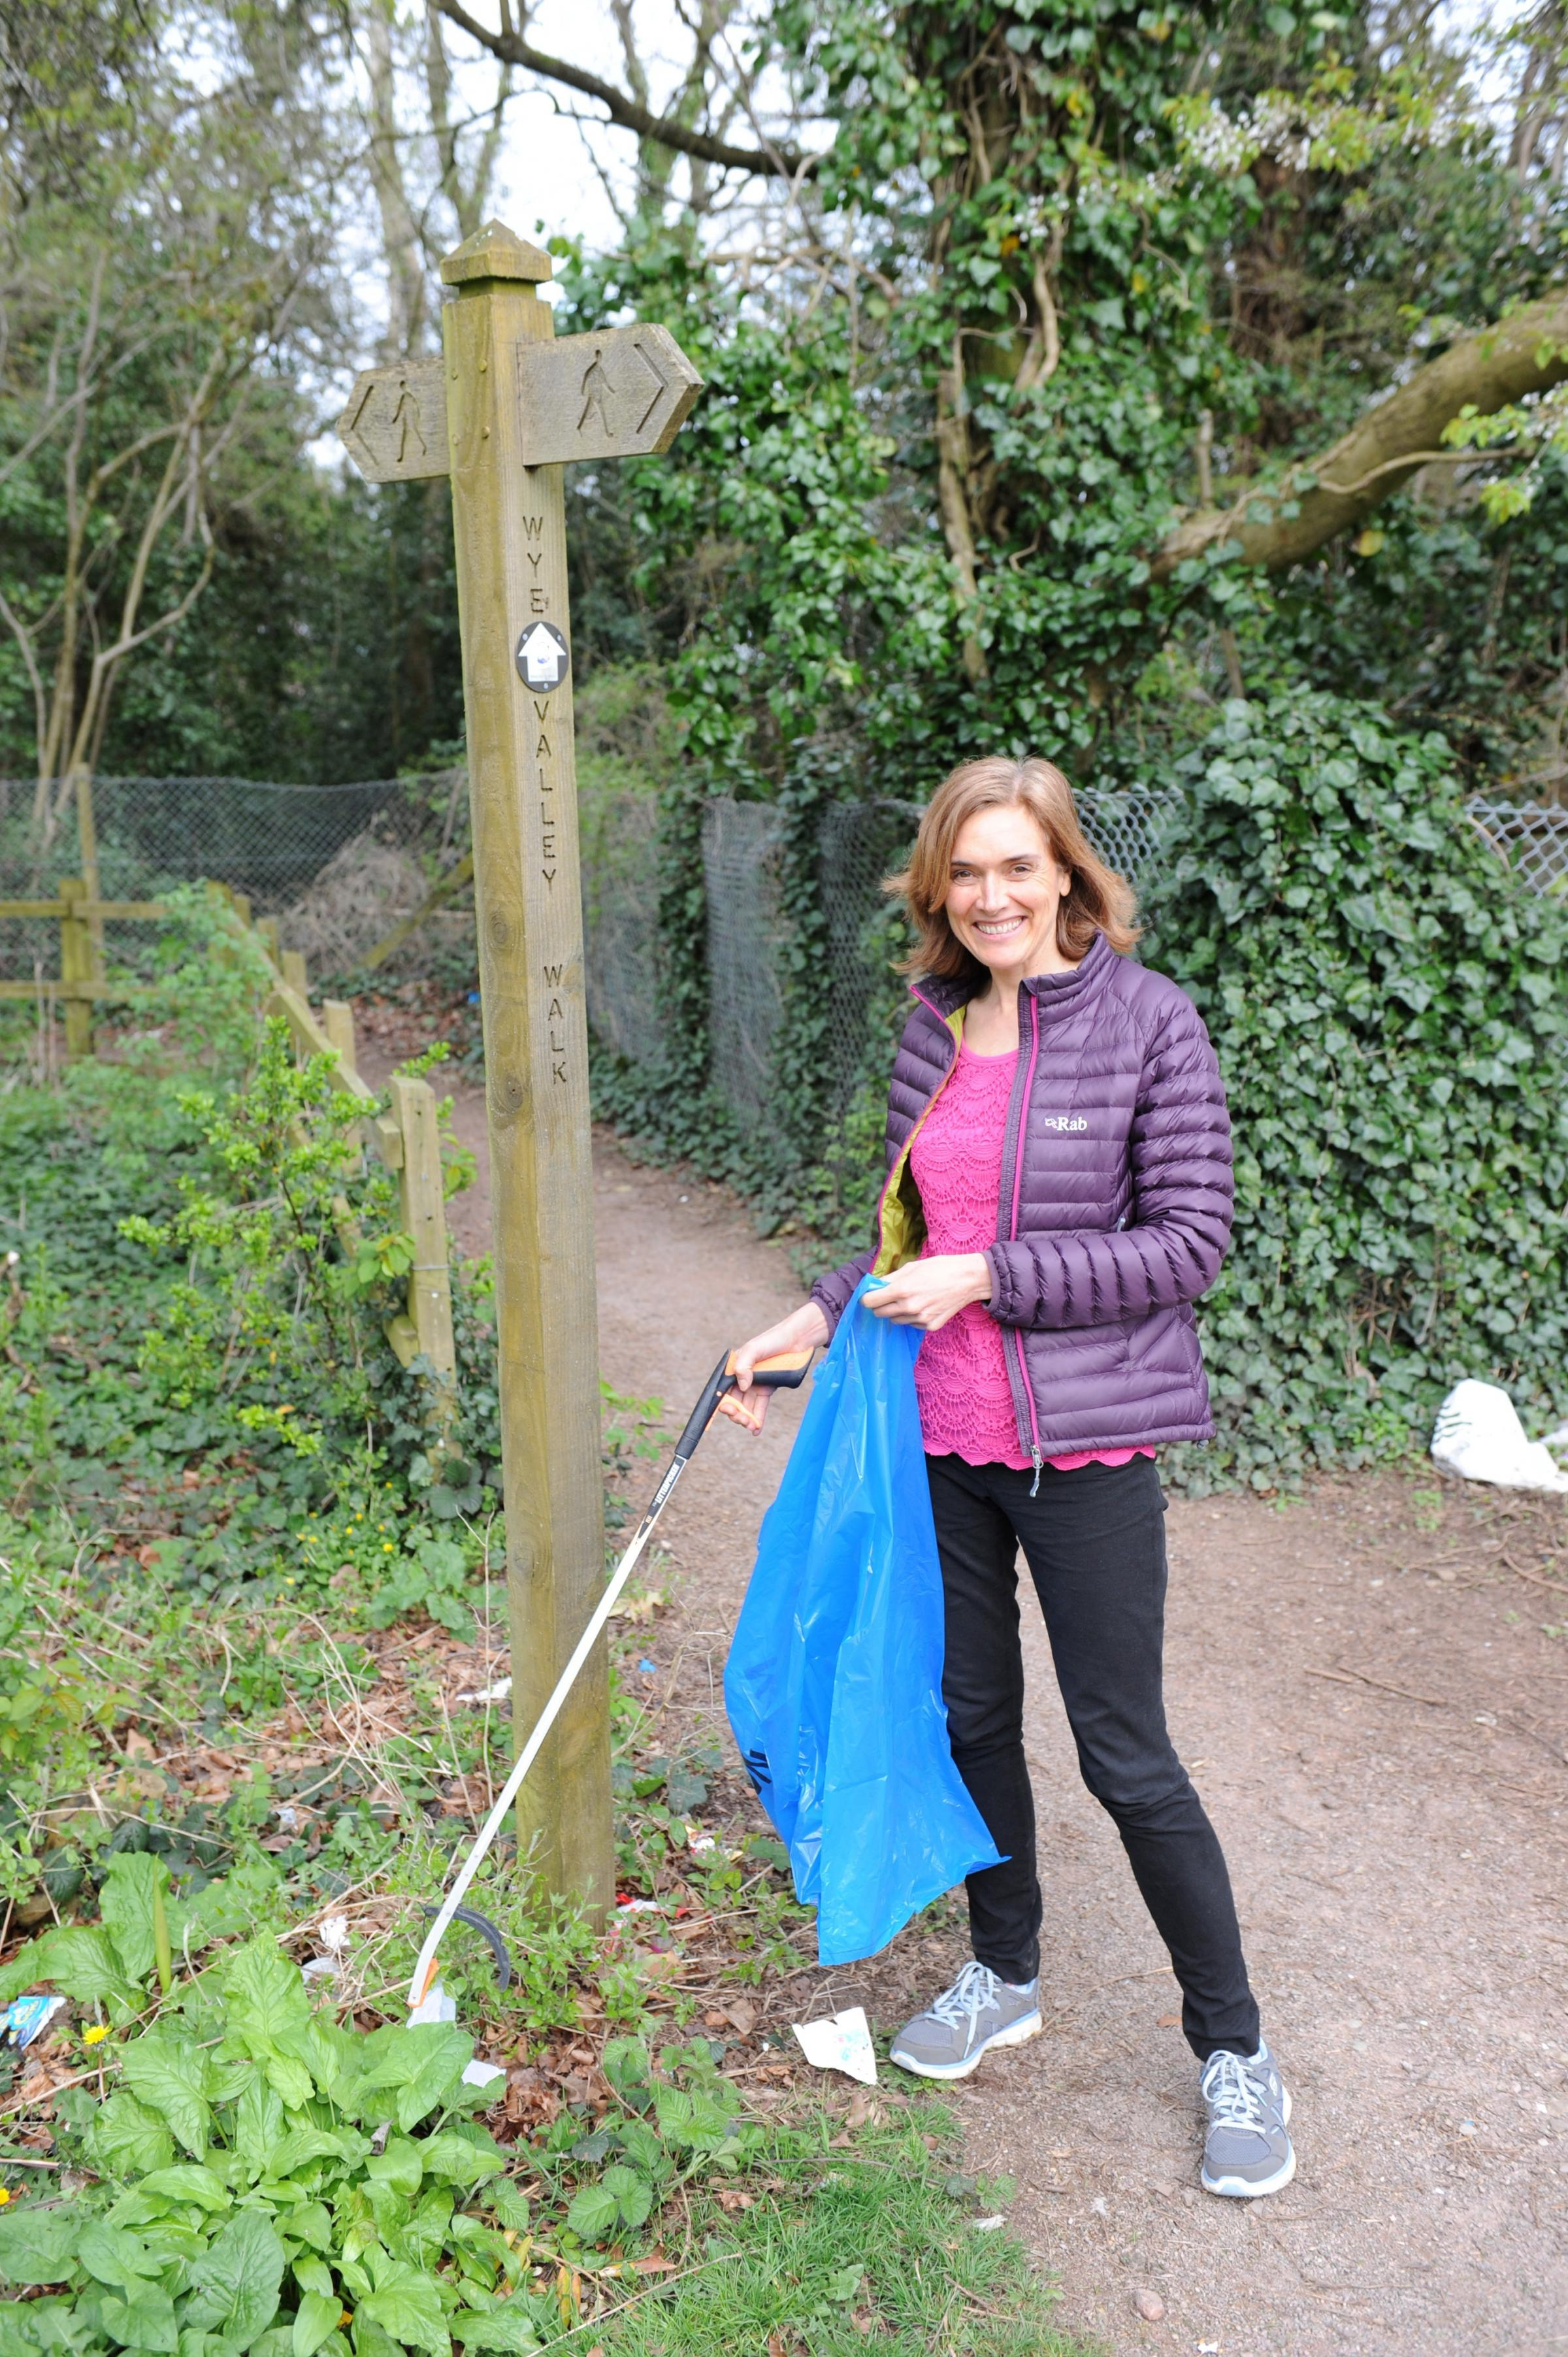 A Chepstow woman, Niki Morgan, is doing a sponsored litter pick along the Wye Valley walk to raise